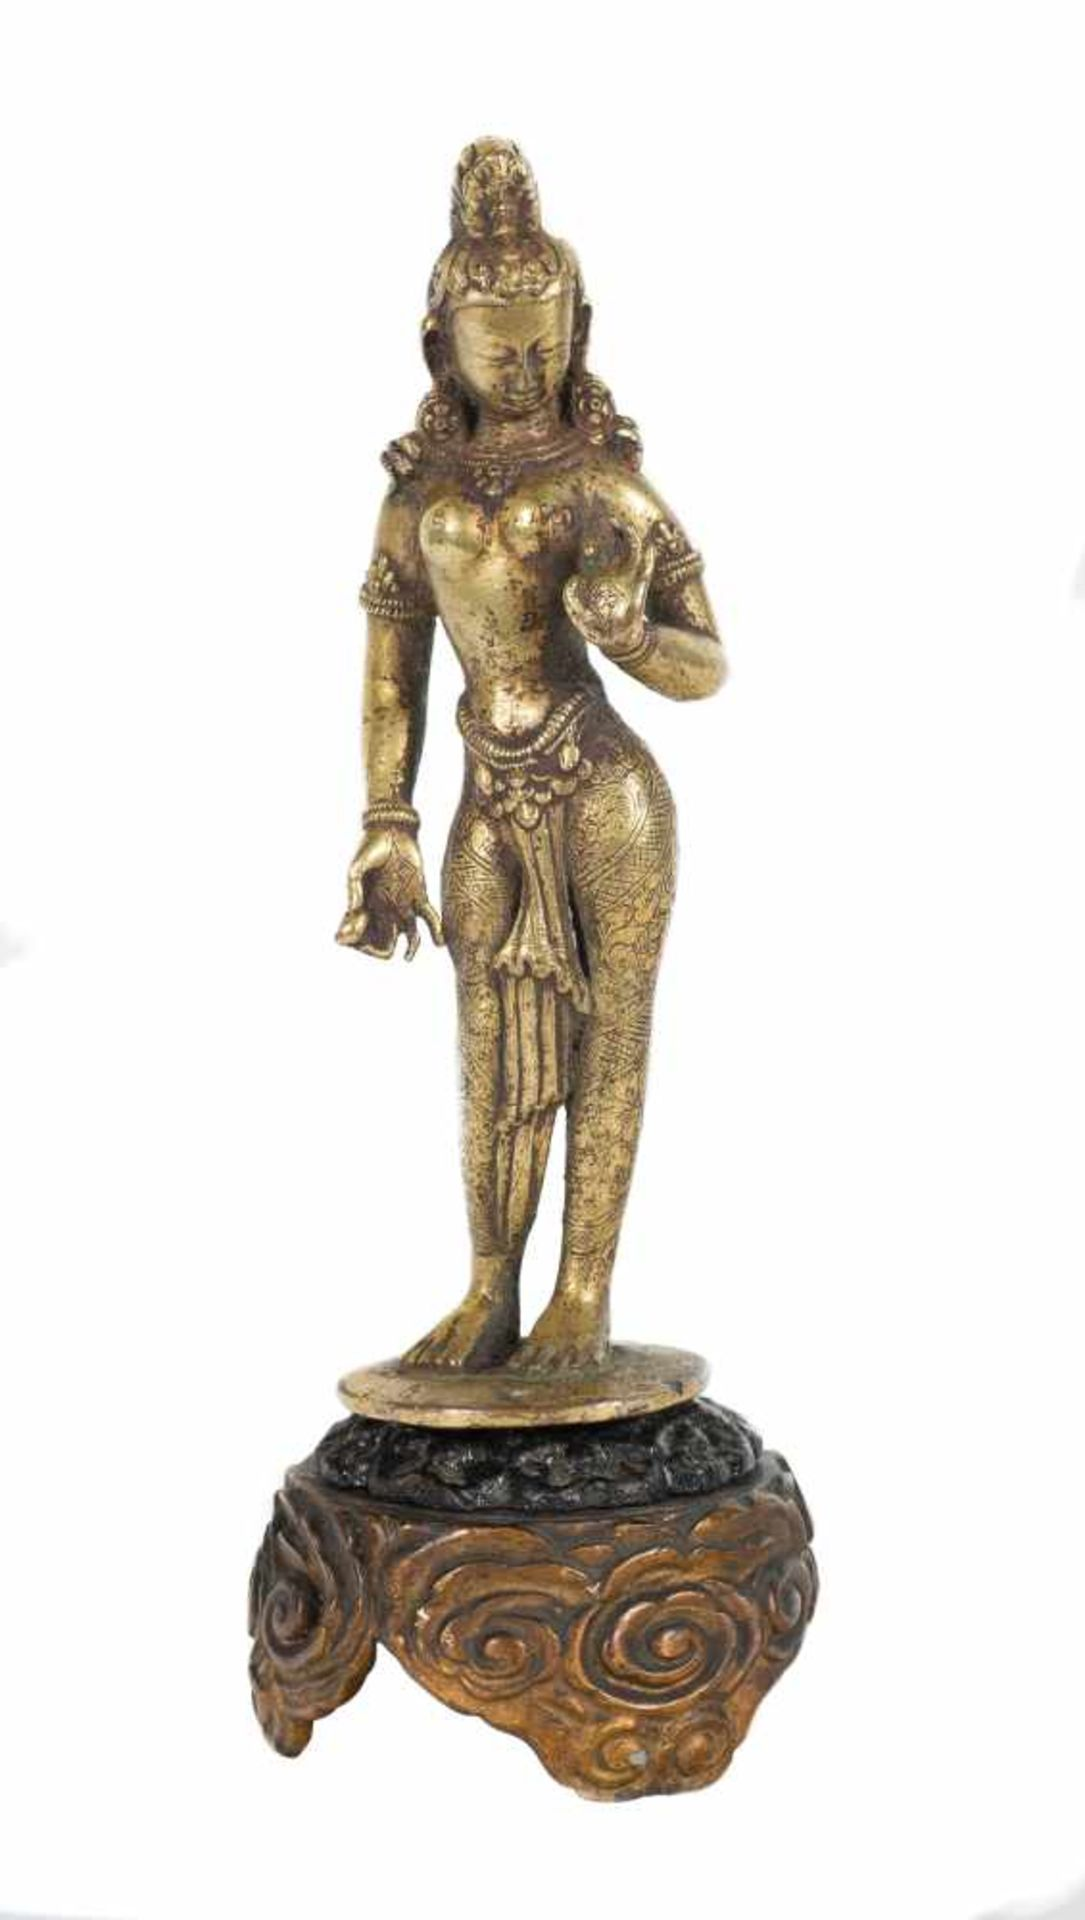 Los 38 - A gilt-bronze figure of standing Tara. Tibet. 17th-18th centuries. Depicted with her left hand